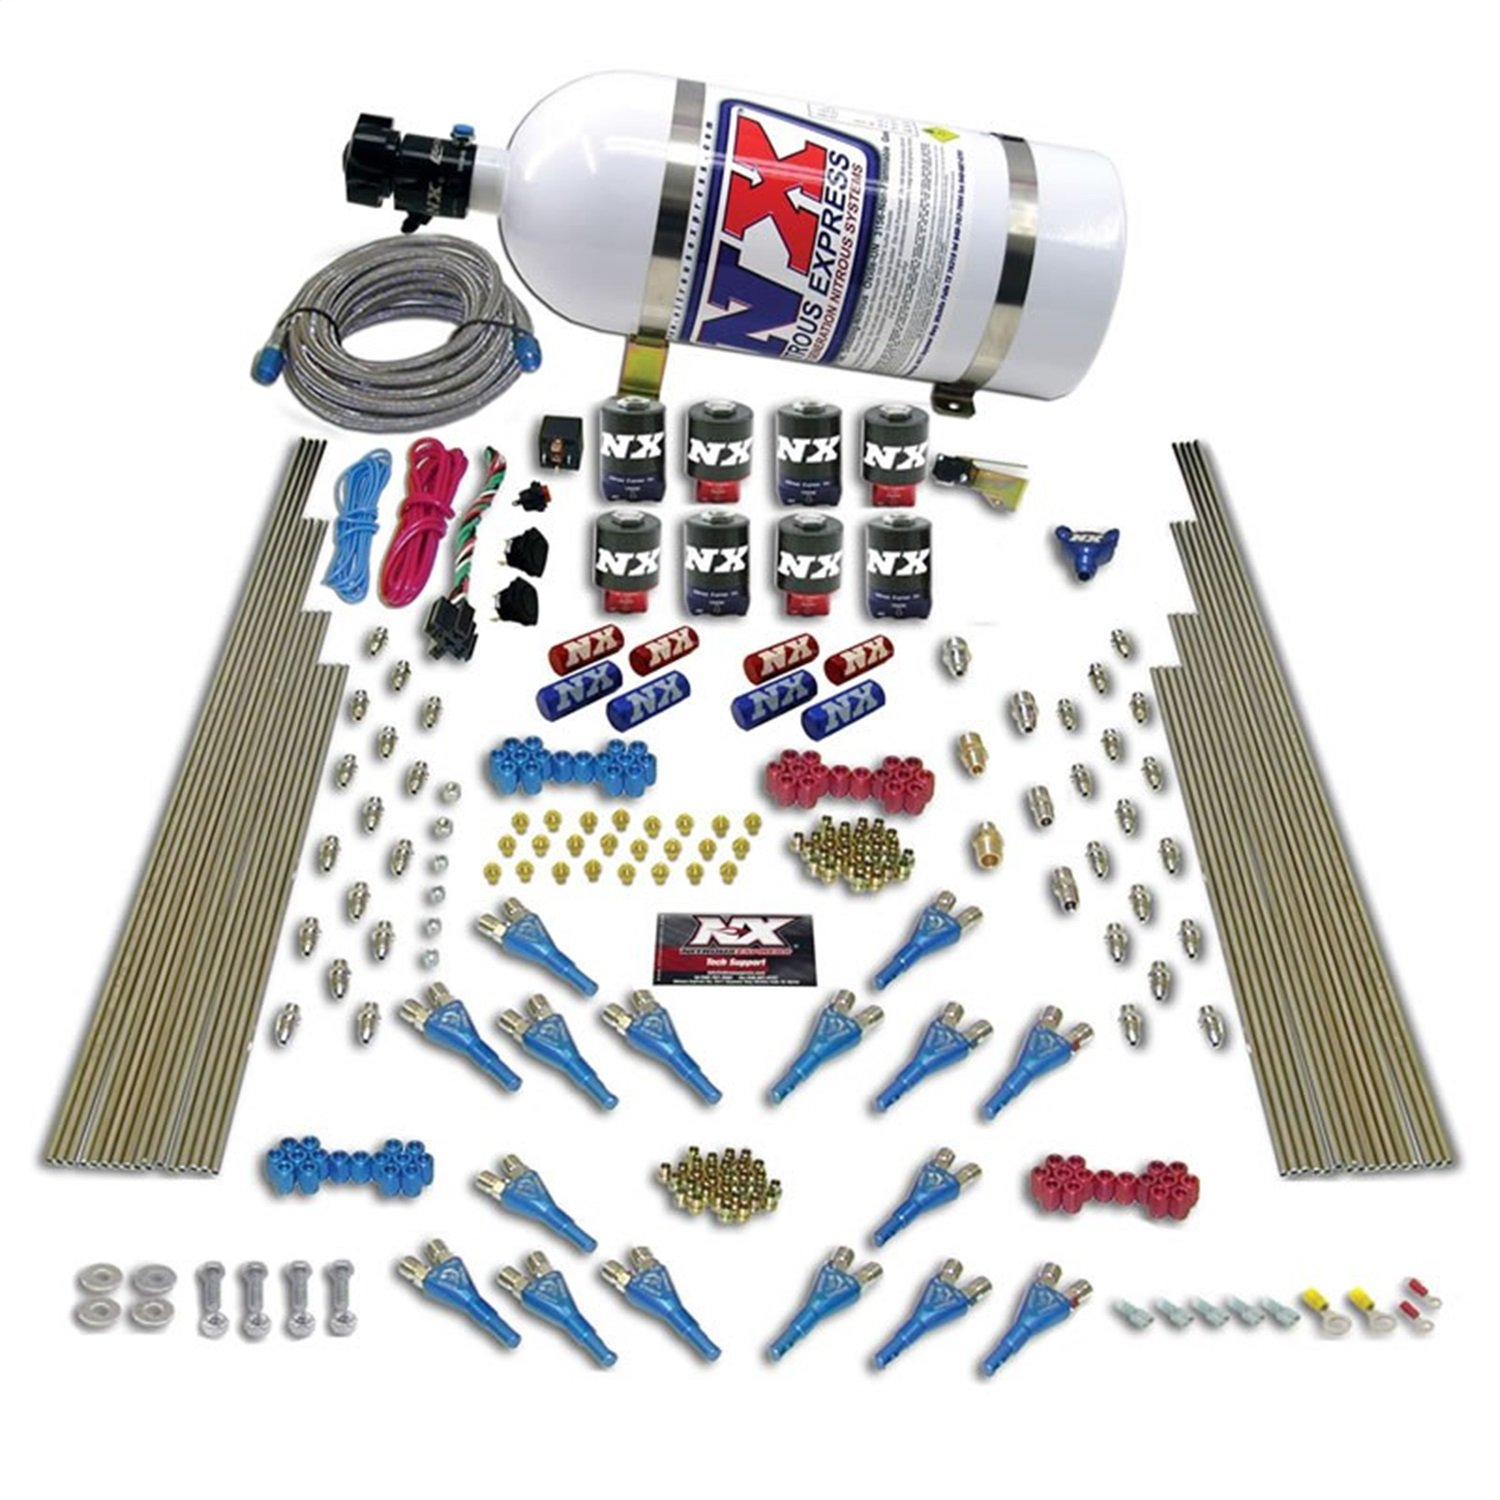 Nitrous Express 90008-10 200-1200 HP Gasoline Shark Dual Stage Direct Port System with 16 Nozzles, 8 Solenoids and 10 lbs. Bottle